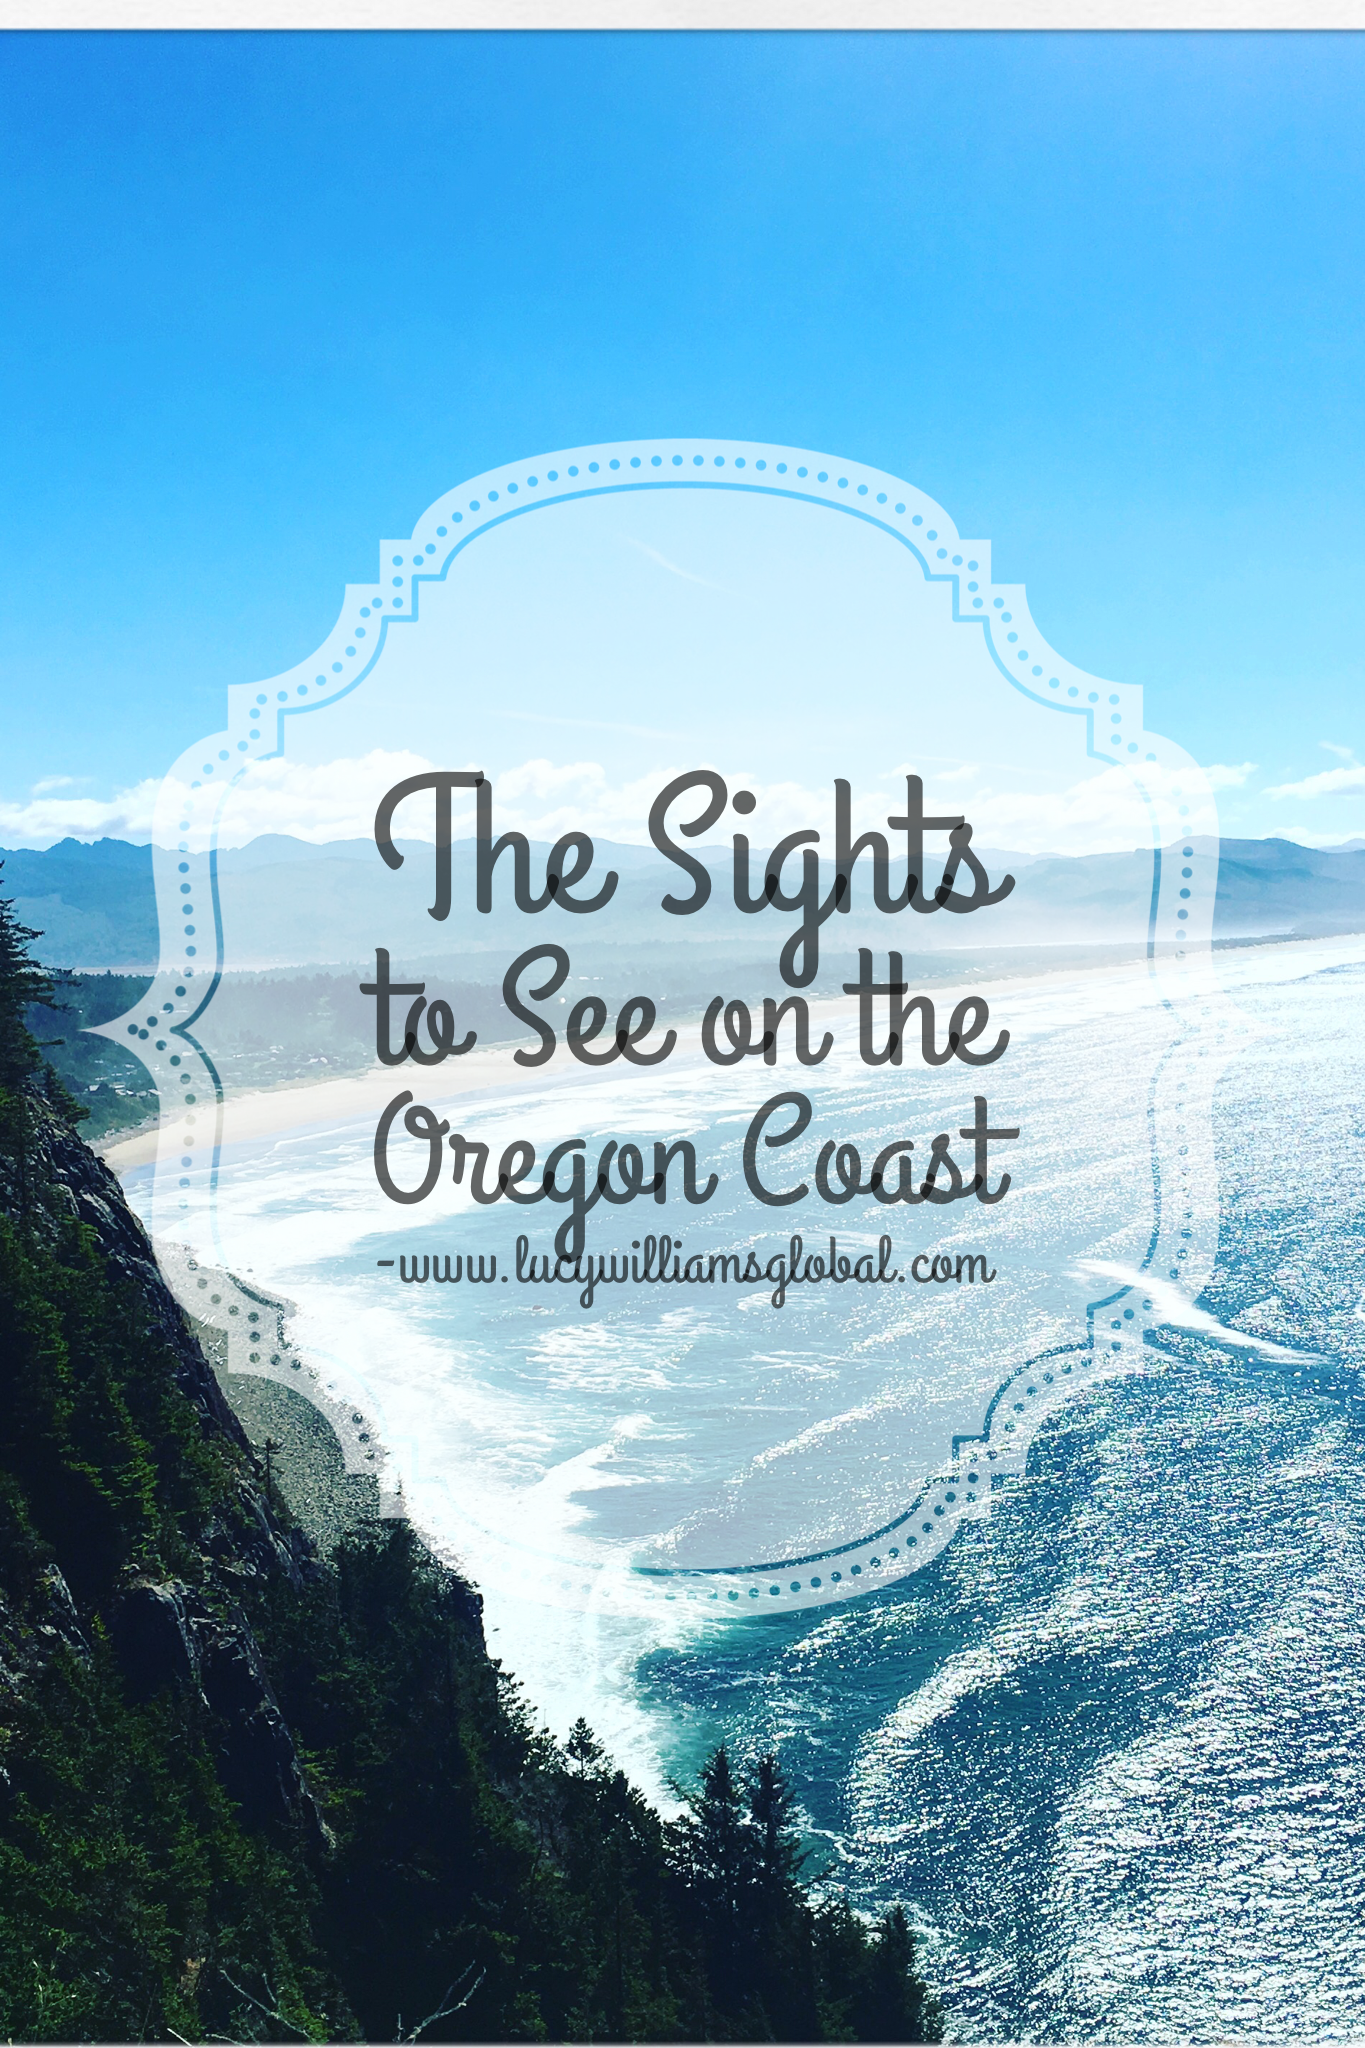 The Sights to See on the Oregon Coast